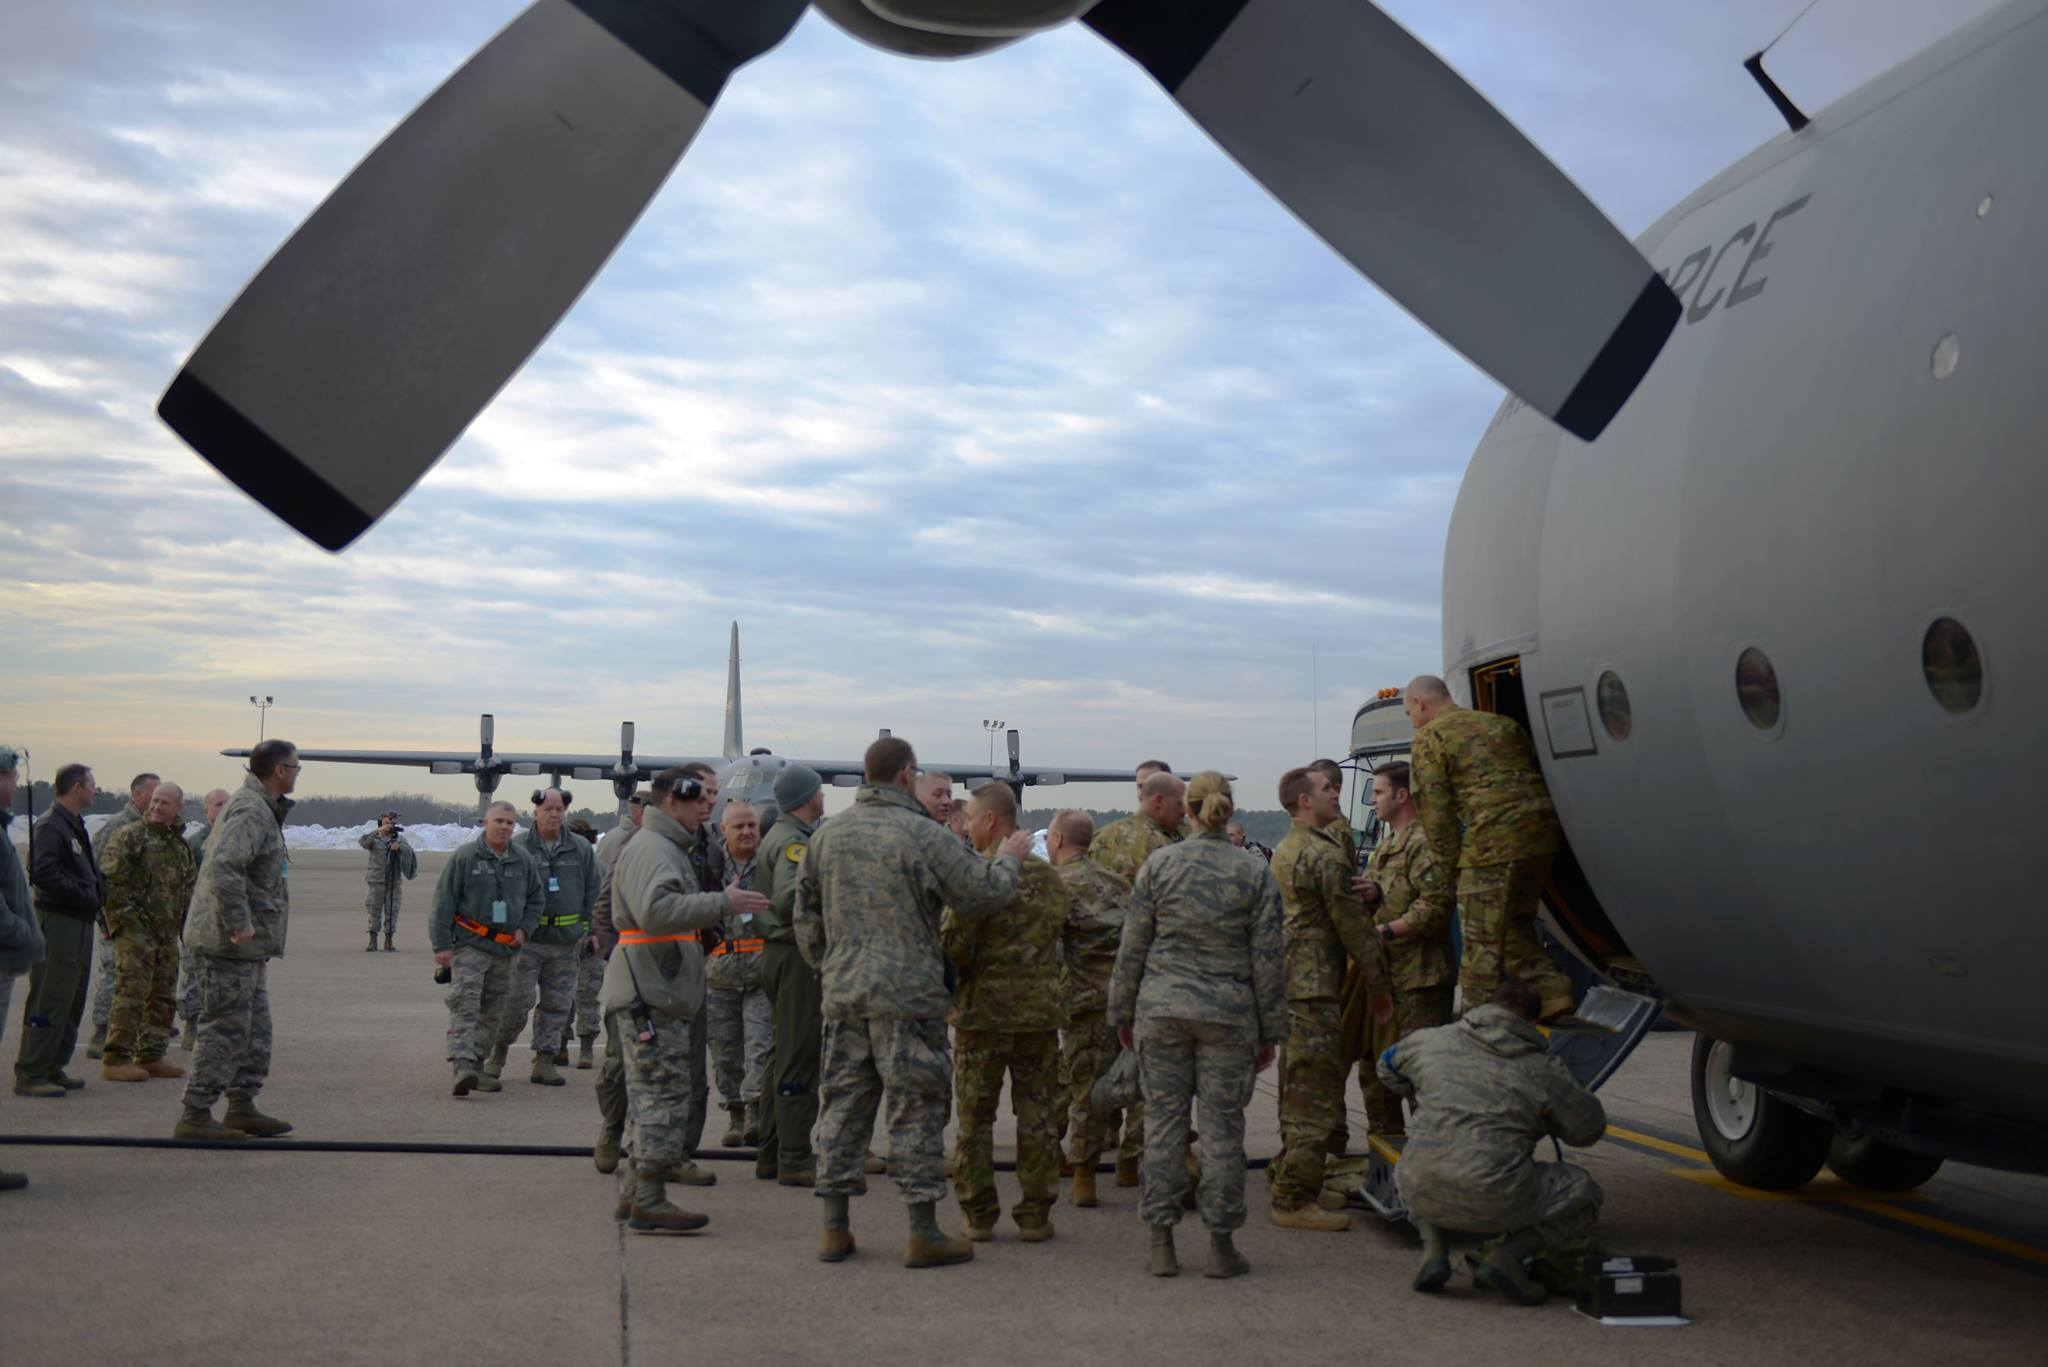 As Harvey pounds Texas, CT sends Air National Guard to help